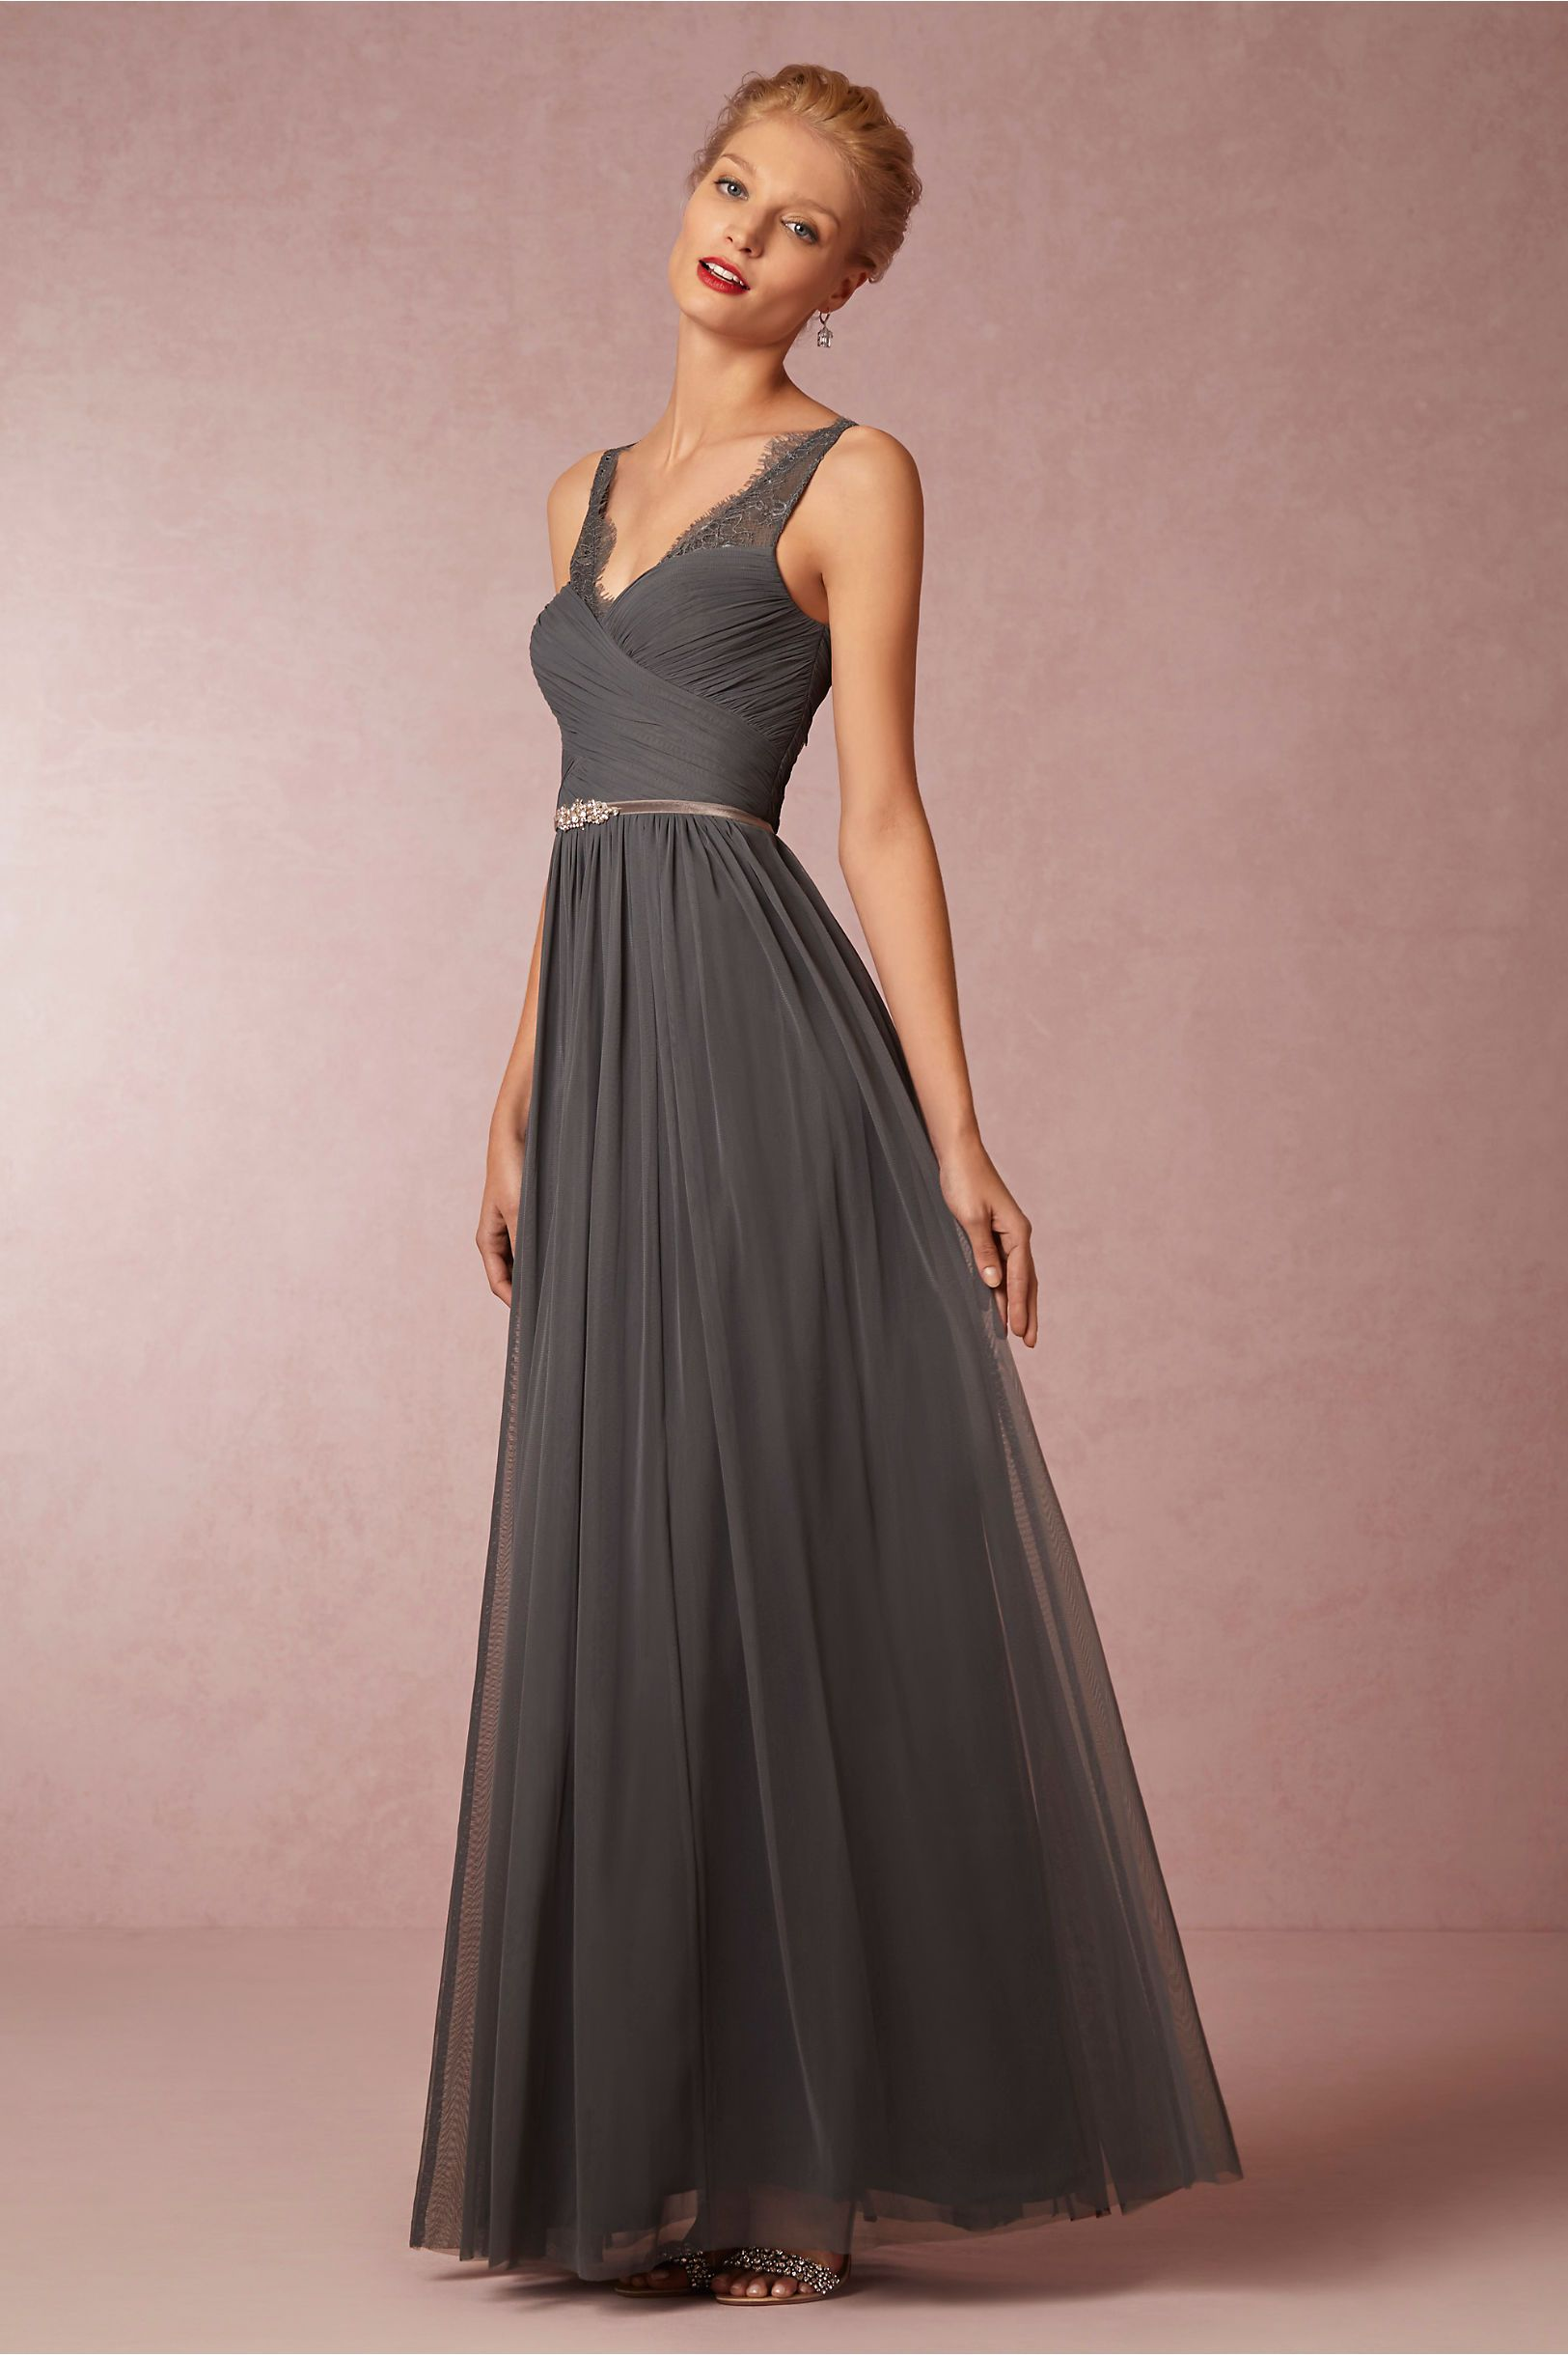 Bhldns hitherto fleur dress in pewter party guests prom 2015 bhldns hitherto fleur dress in pewter charcoal bridesmaid ombrellifo Image collections